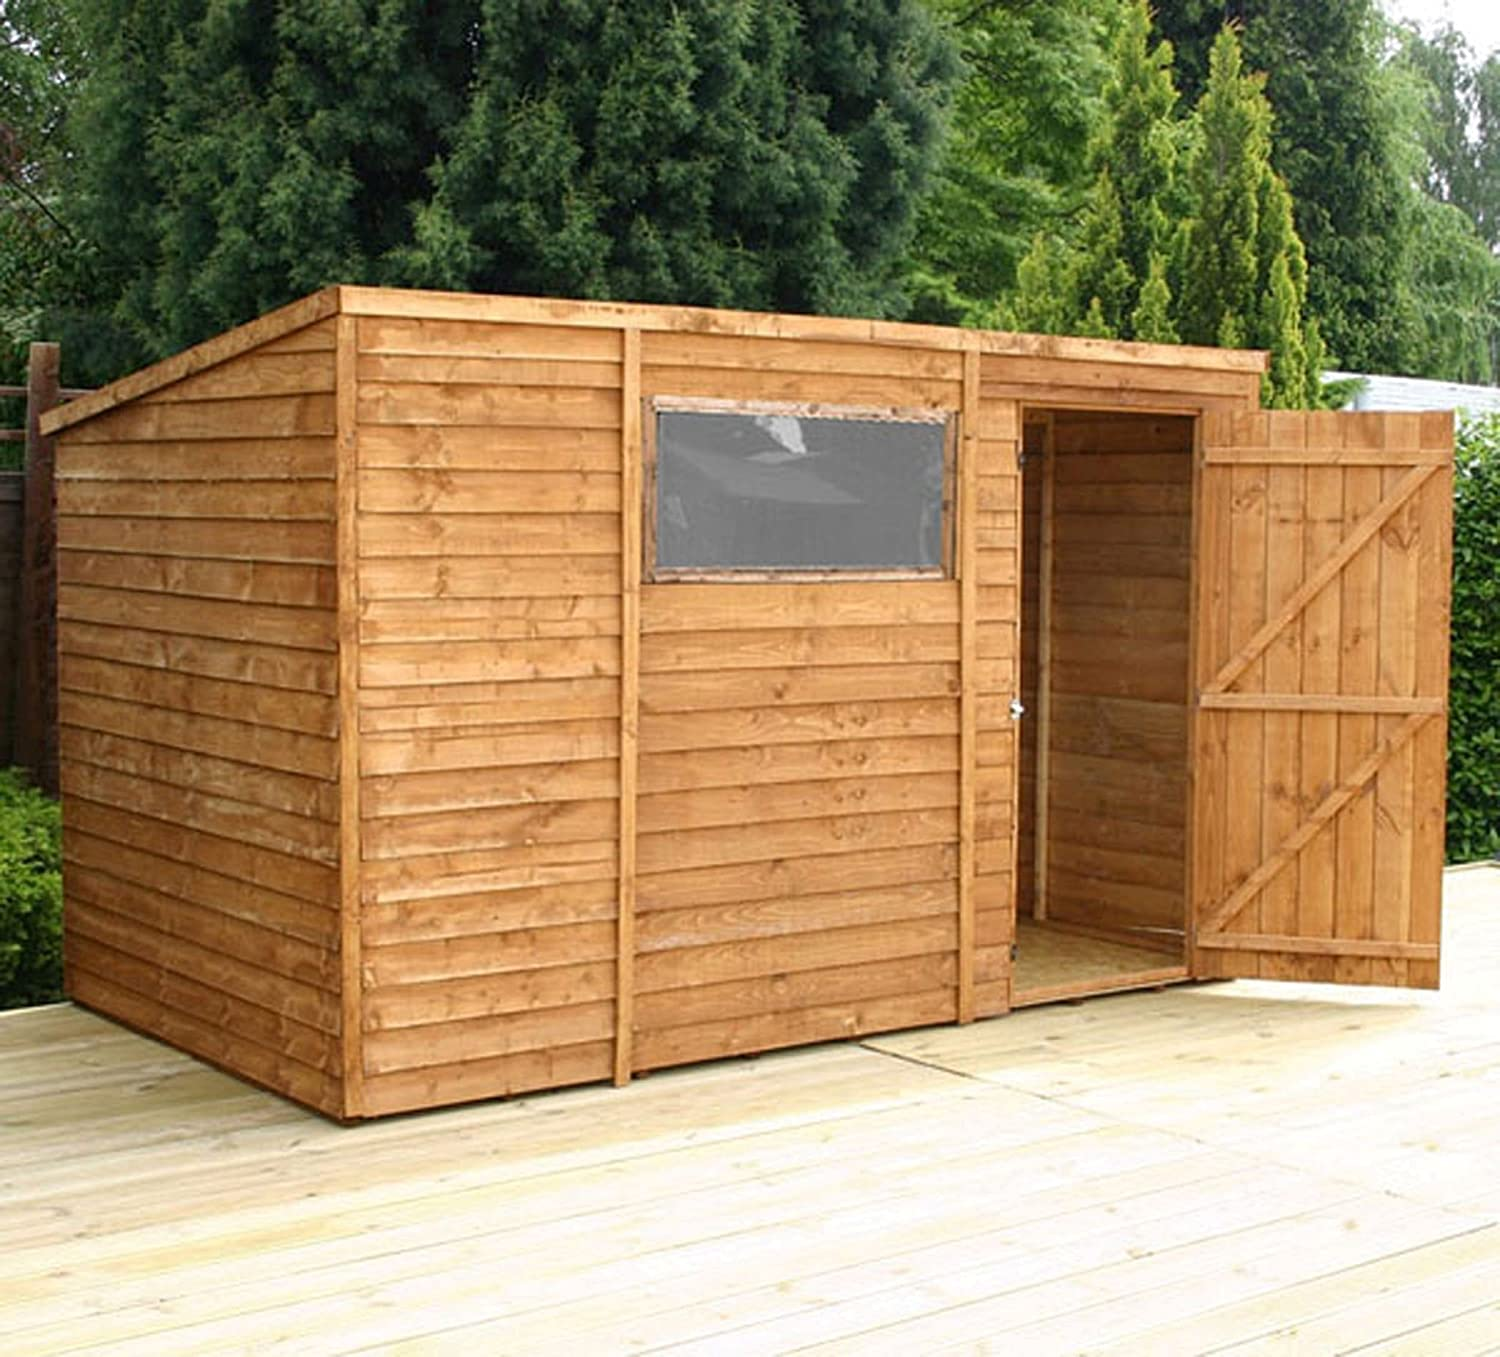 10 x 6 wooden overlap clad pent shed amazoncouk garden outdoors - Garden Sheds 10 X 6